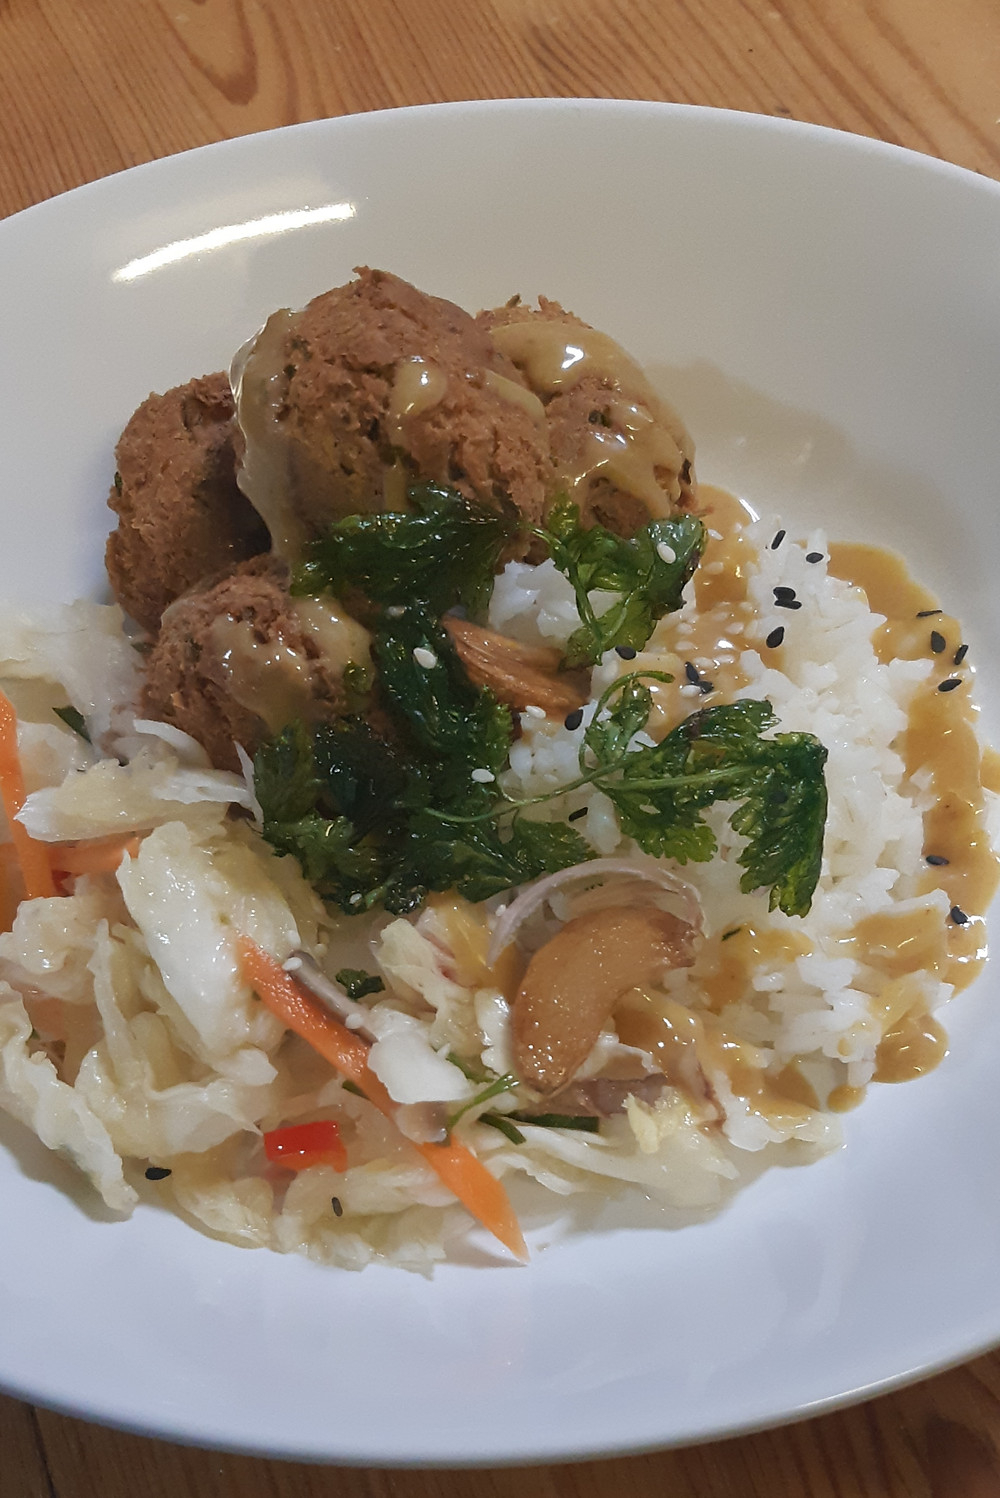 A plate of chickpea falafel, white kimchi and dressing